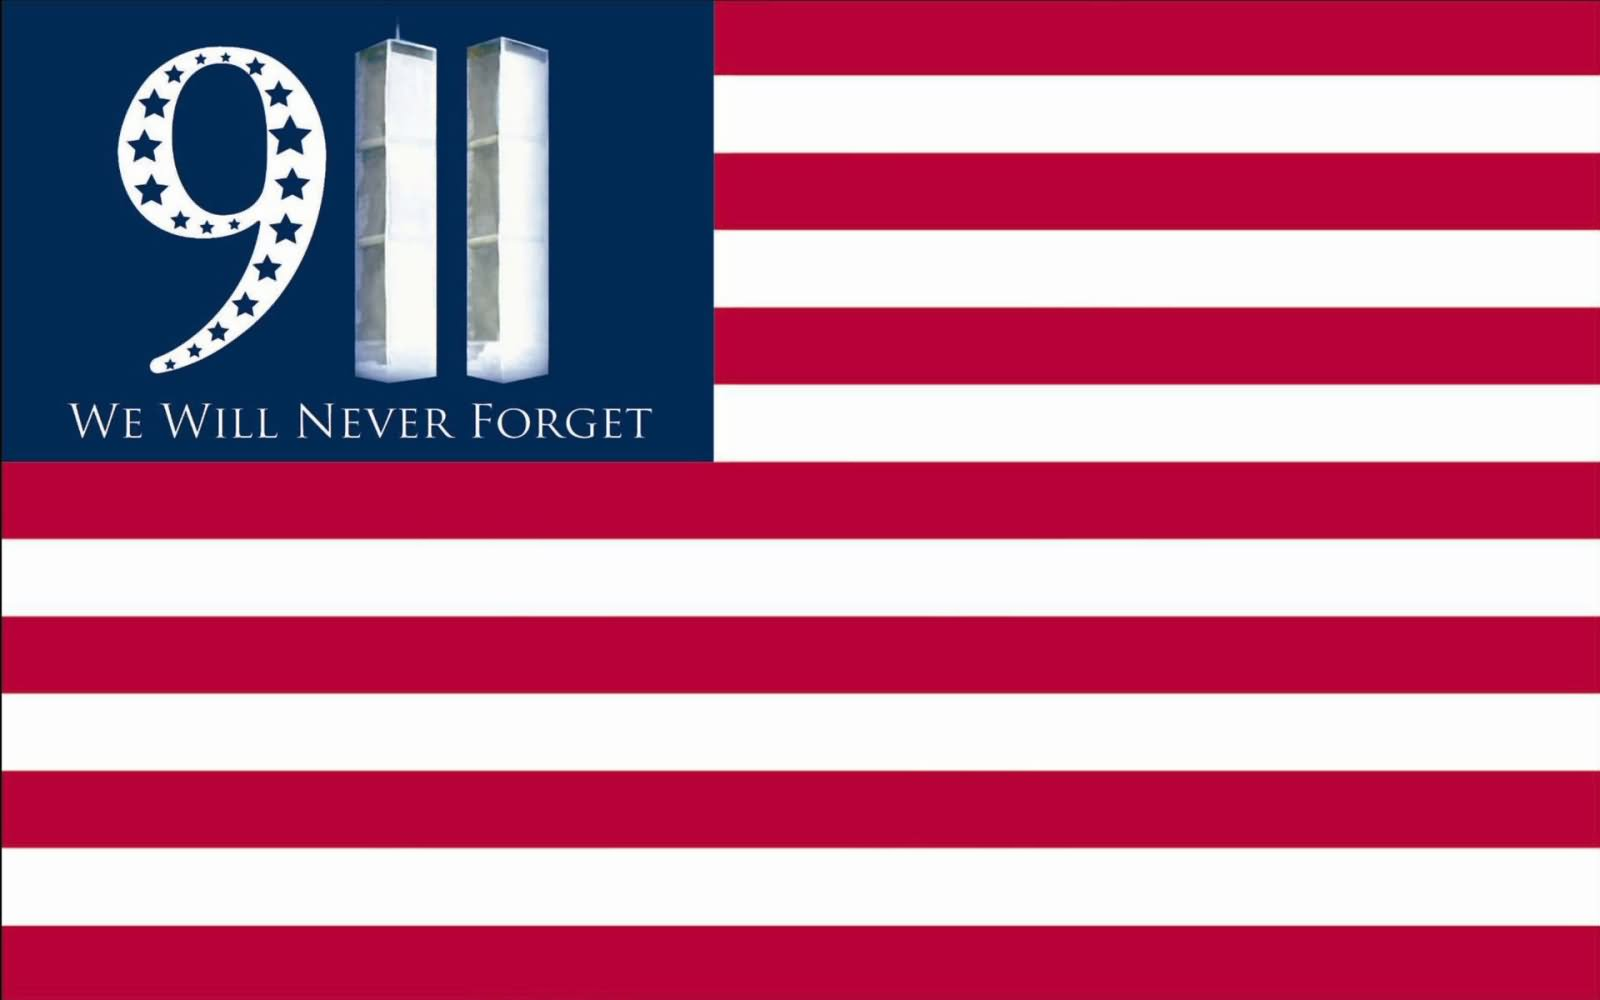 9-11 We Will Never Forget Patriot Day